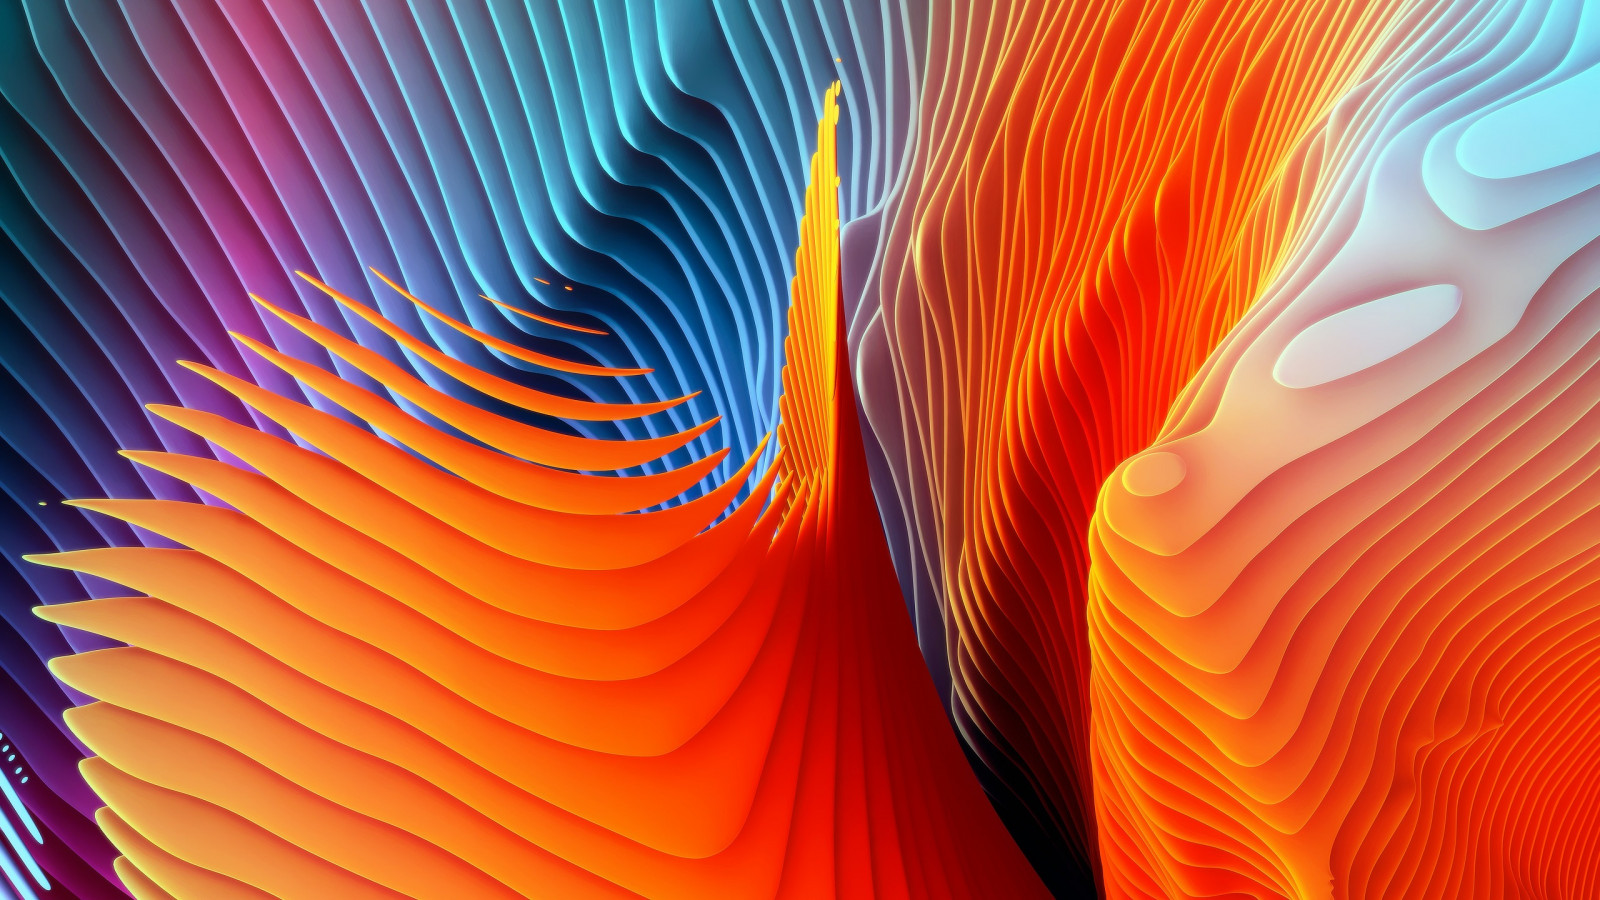 Colorful spirals wallpaper 1600x900